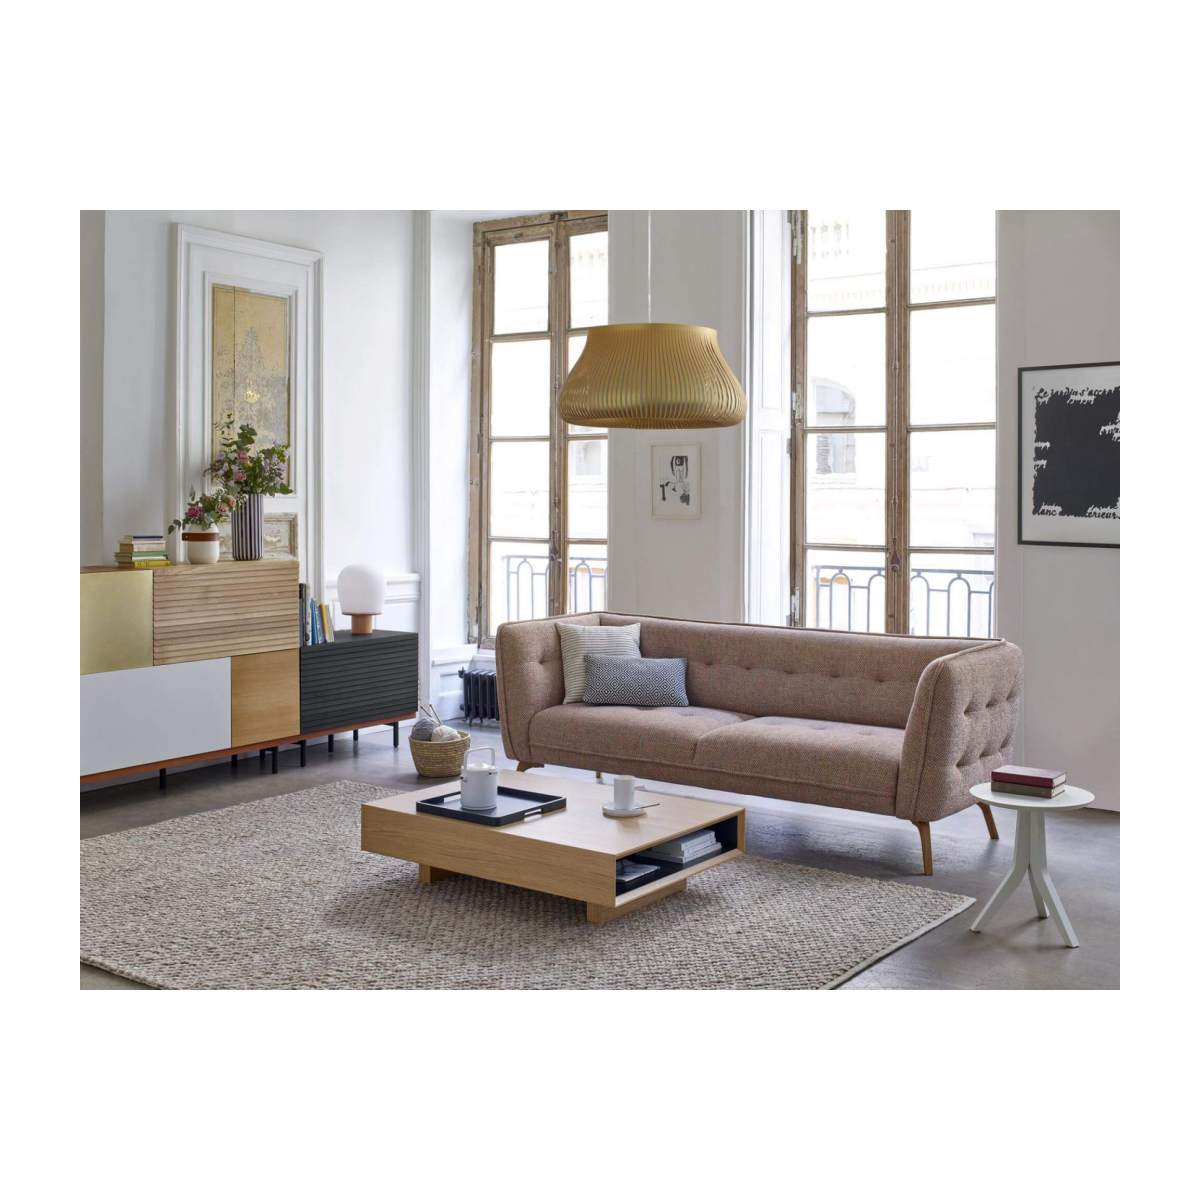 2 seater sofa in Lecce fabric, muscat and natural oak feet n°5